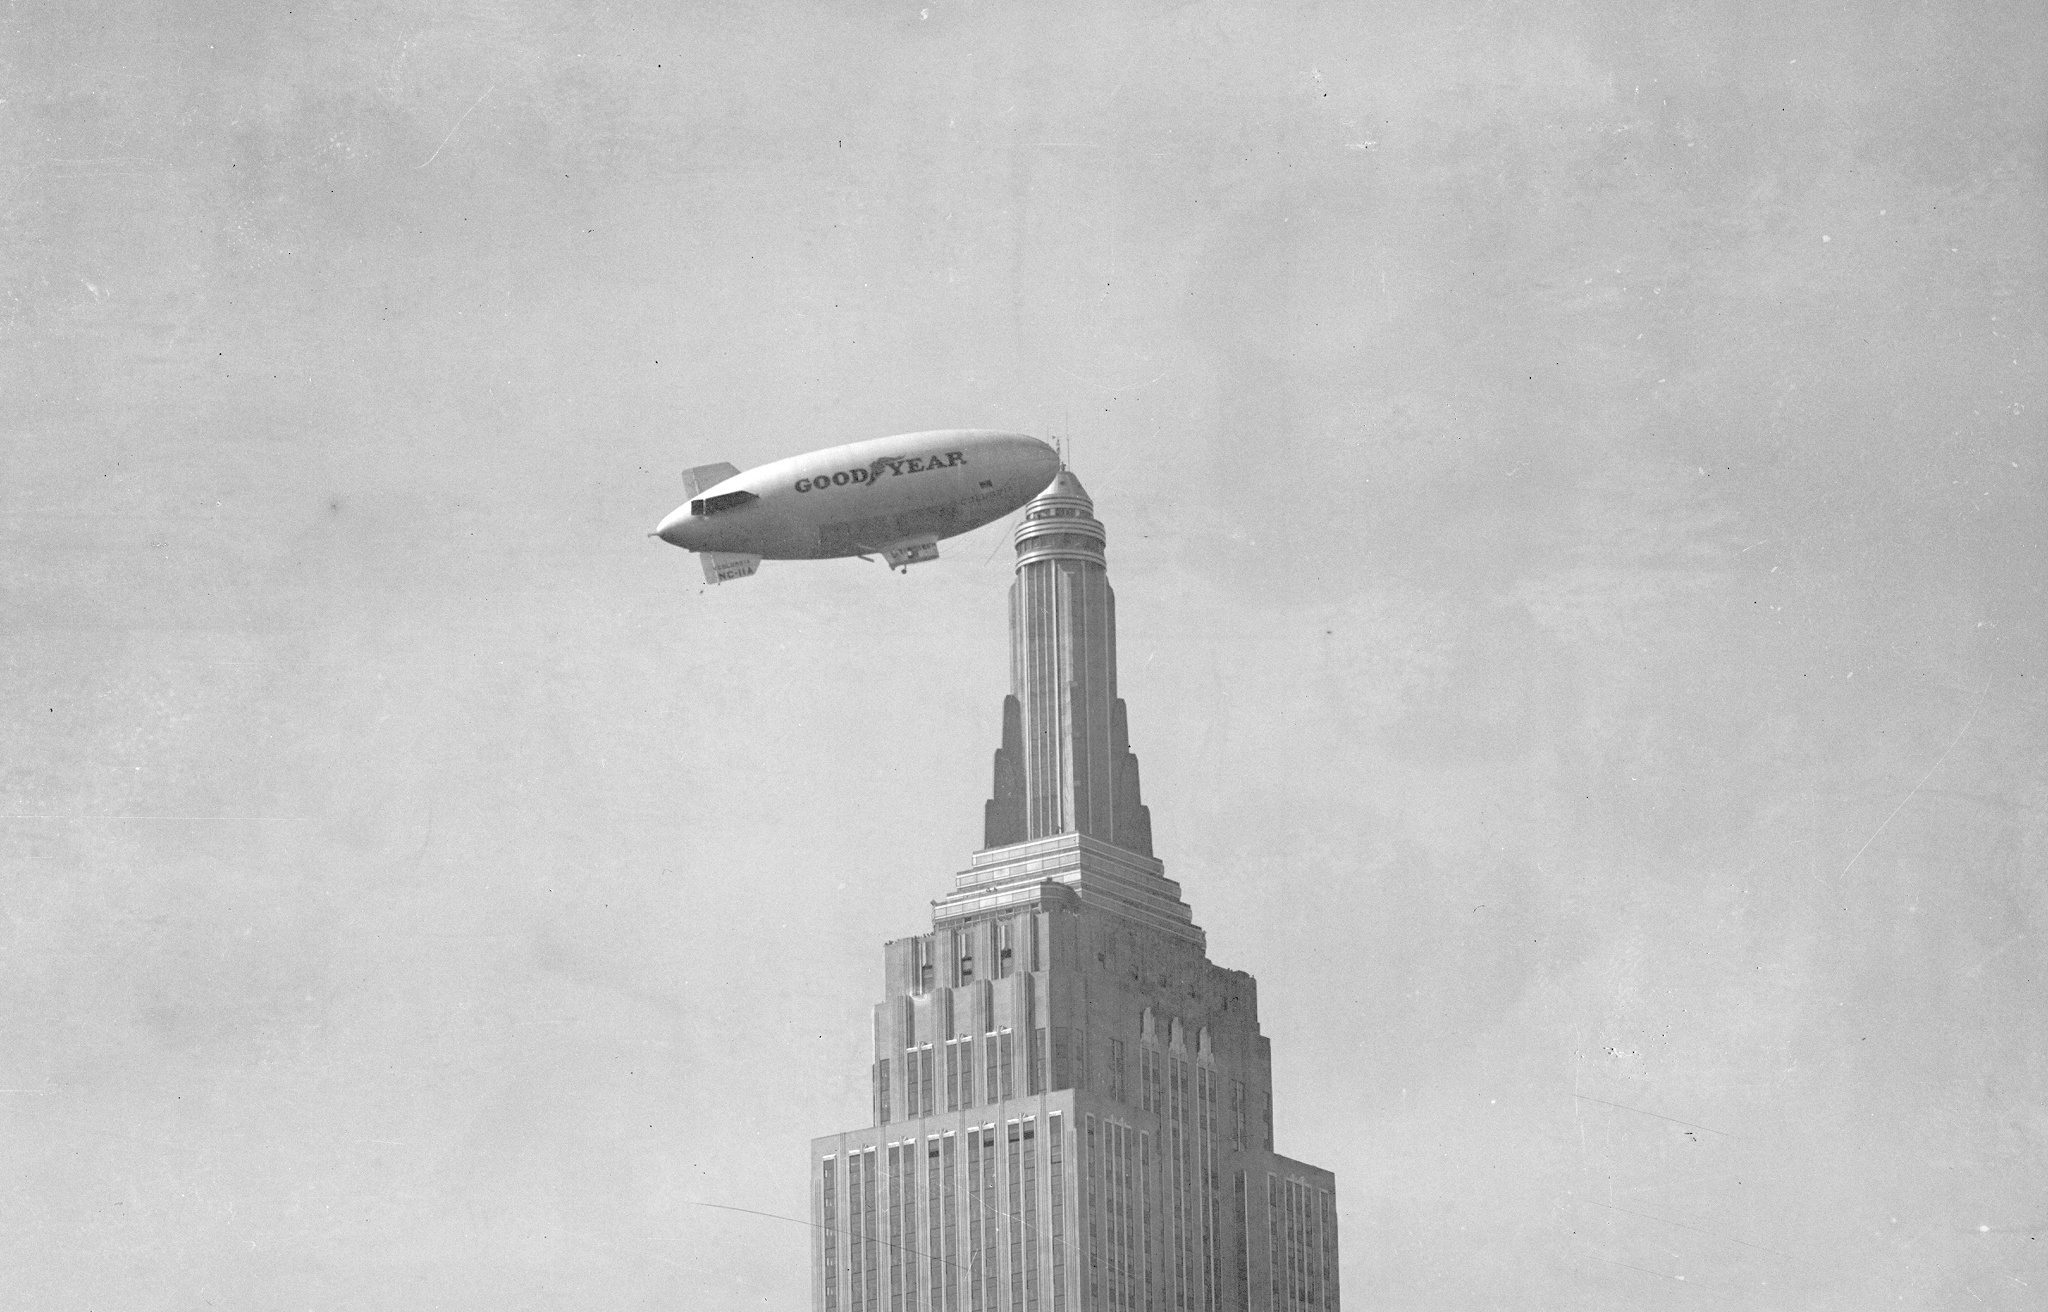 Empire State Building Blimp Dock